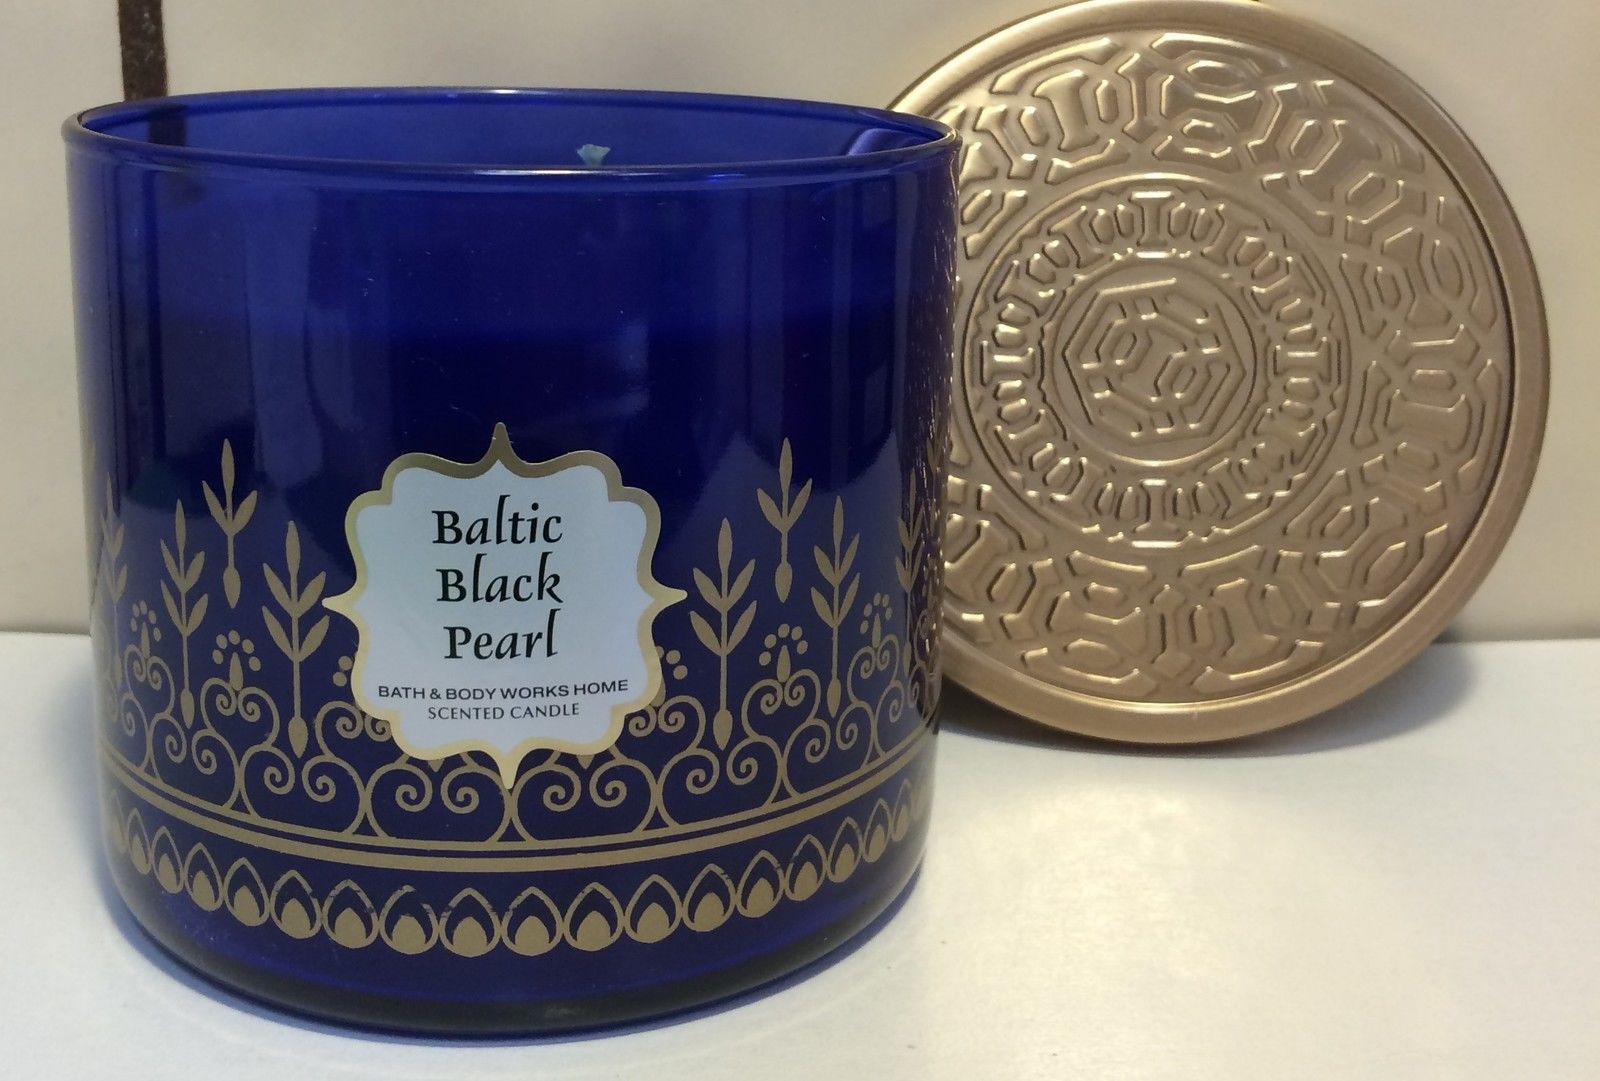 Bath & Body Works BALTIC BLACK PEARL Scented Candle, 14.5 oz / 411 g